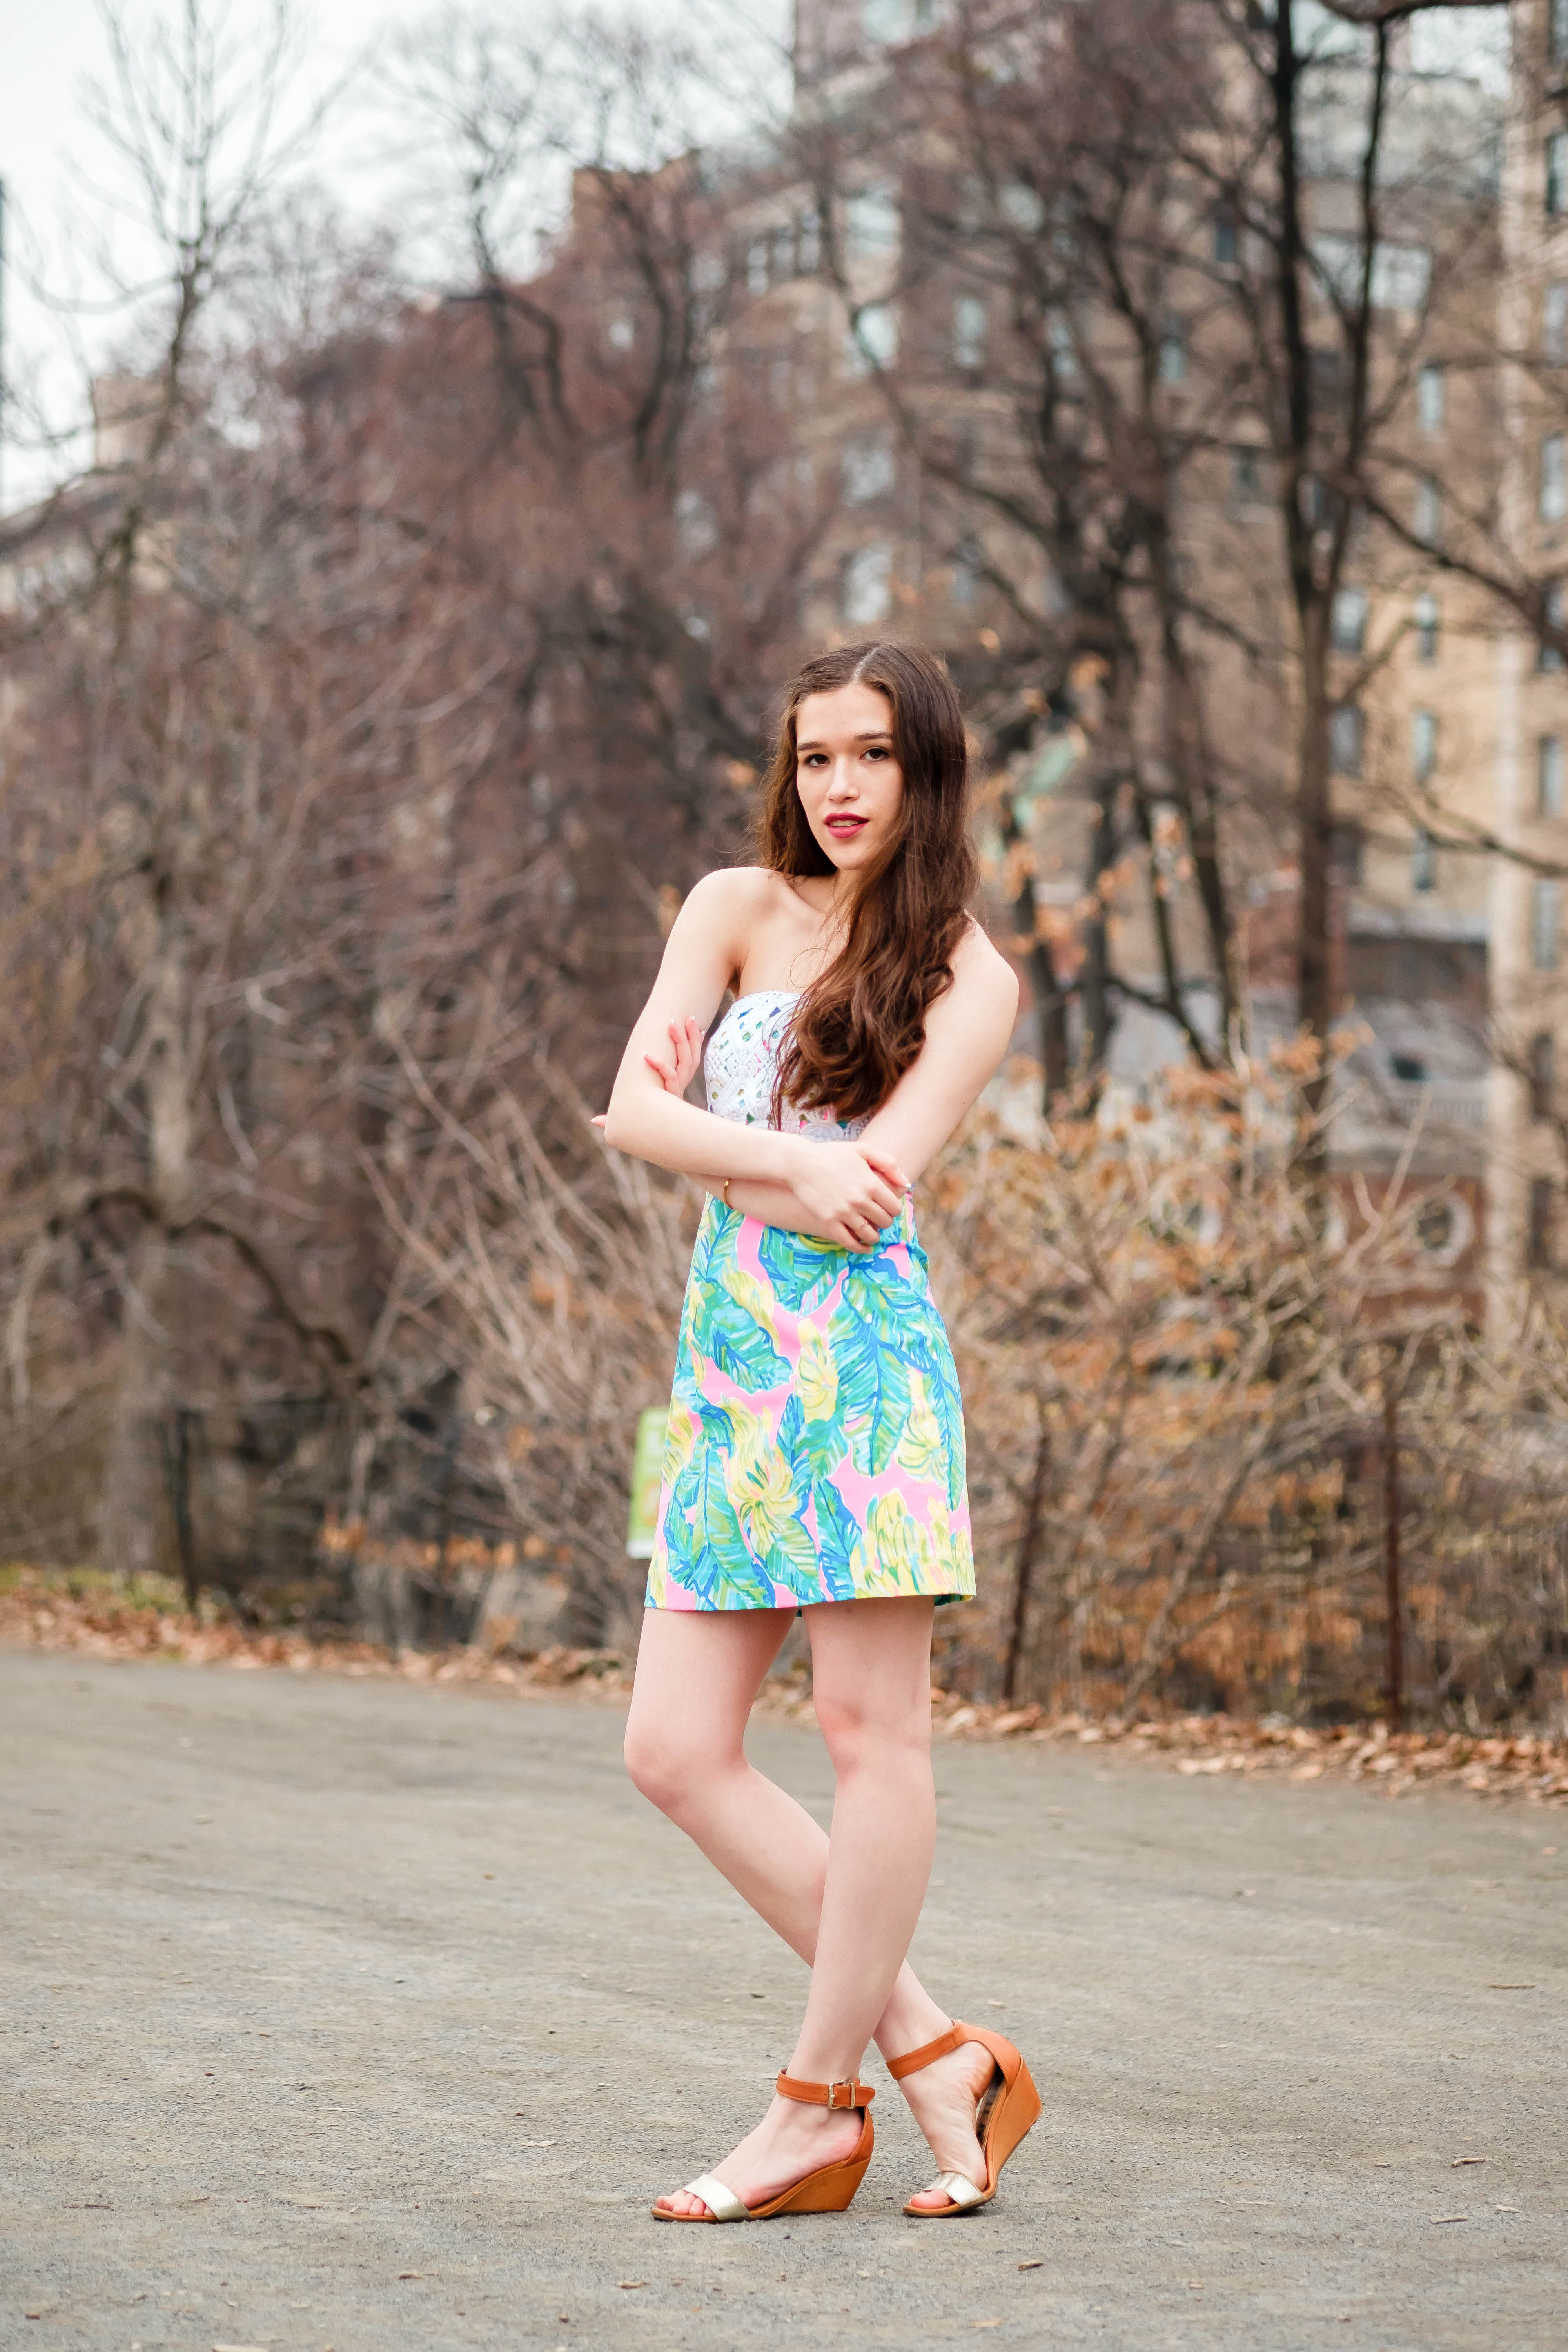 lilly pulitzer preppy girl clothing fashion outfit brynn dress in local flavor pink palm leaf leaves print pattern sundress with white lace girl with long curly brown hair hairstyle curled in central park manhattan nyc new york city gold wedges wedge shoe fashion style trees without leaves on unpaved road